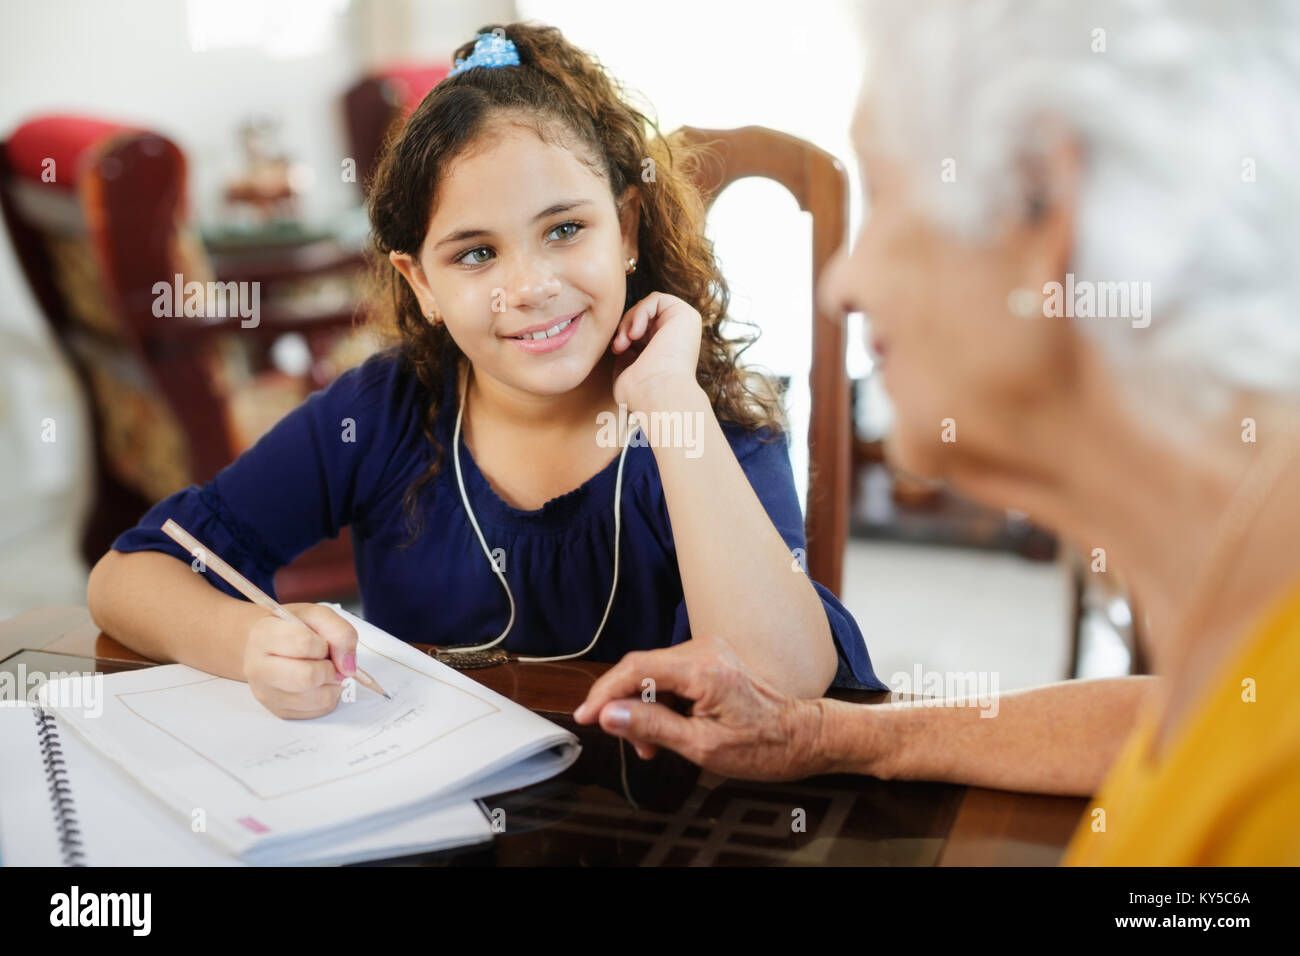 Happy little girl doing school homework with elderly woman at home. Family relationship with grandmother and granddaughter. - Stock Image